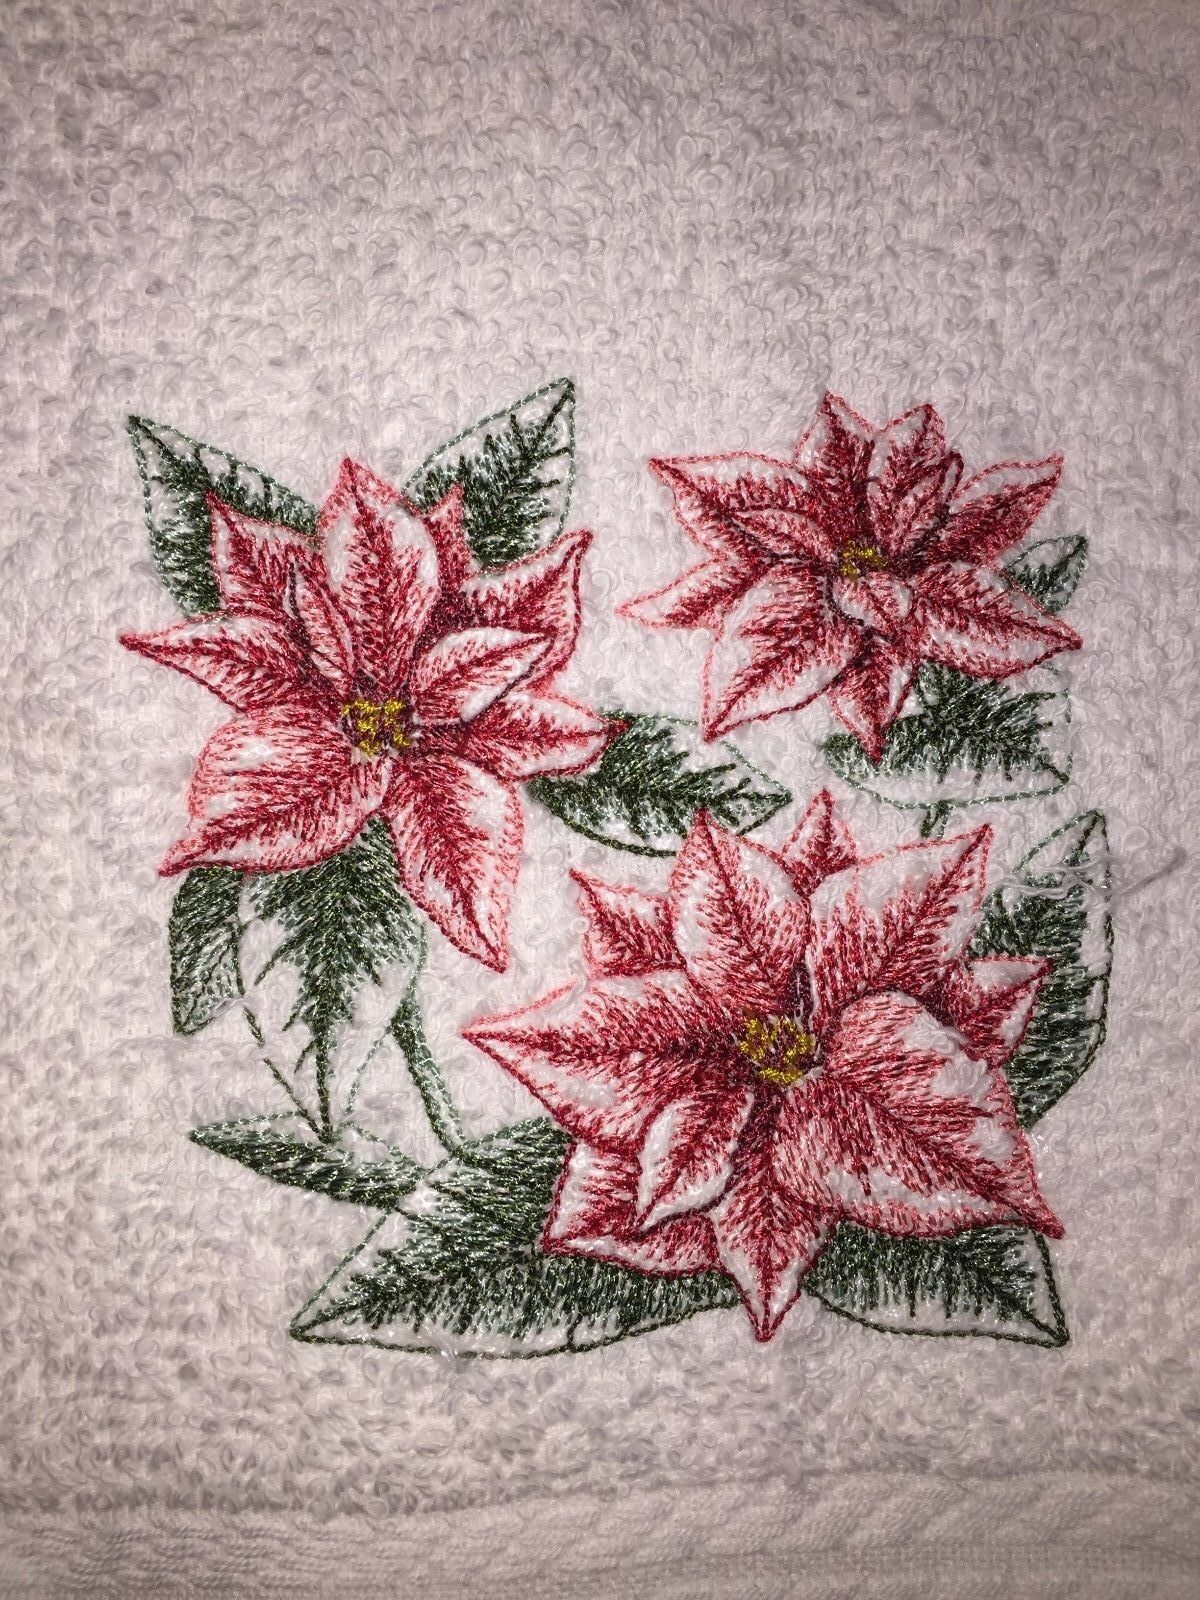 Embroidered White Bathroom Hand Towel 3 Red Christmas Poinsettias Sketch HS1050